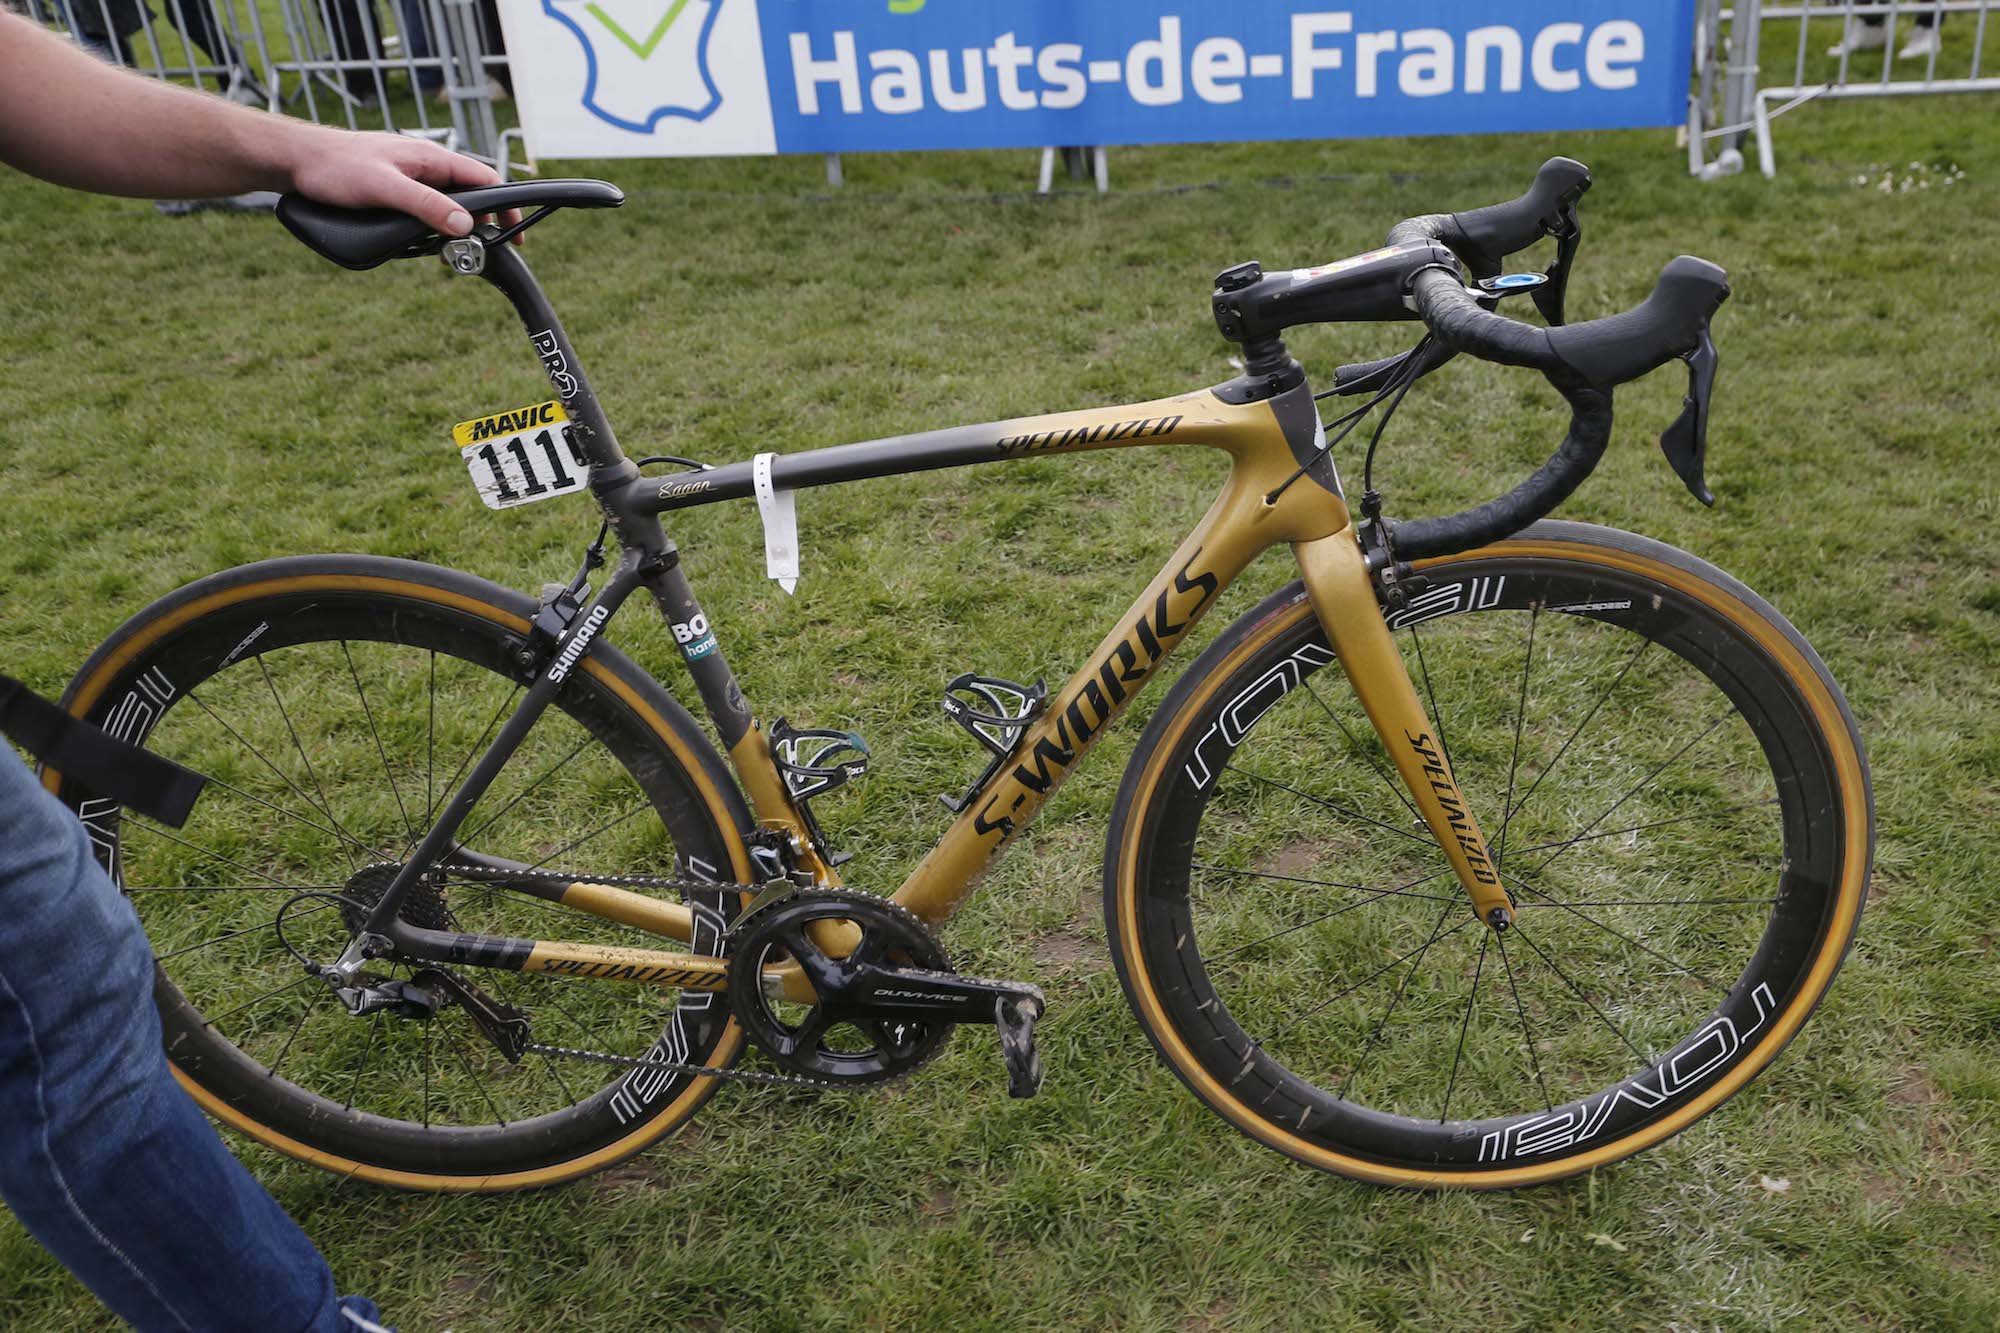 Thieves break into Specialized HQ and steal $160,000 worth of bikes, including Peter Sagan's Paris-Roubaix-winning machine